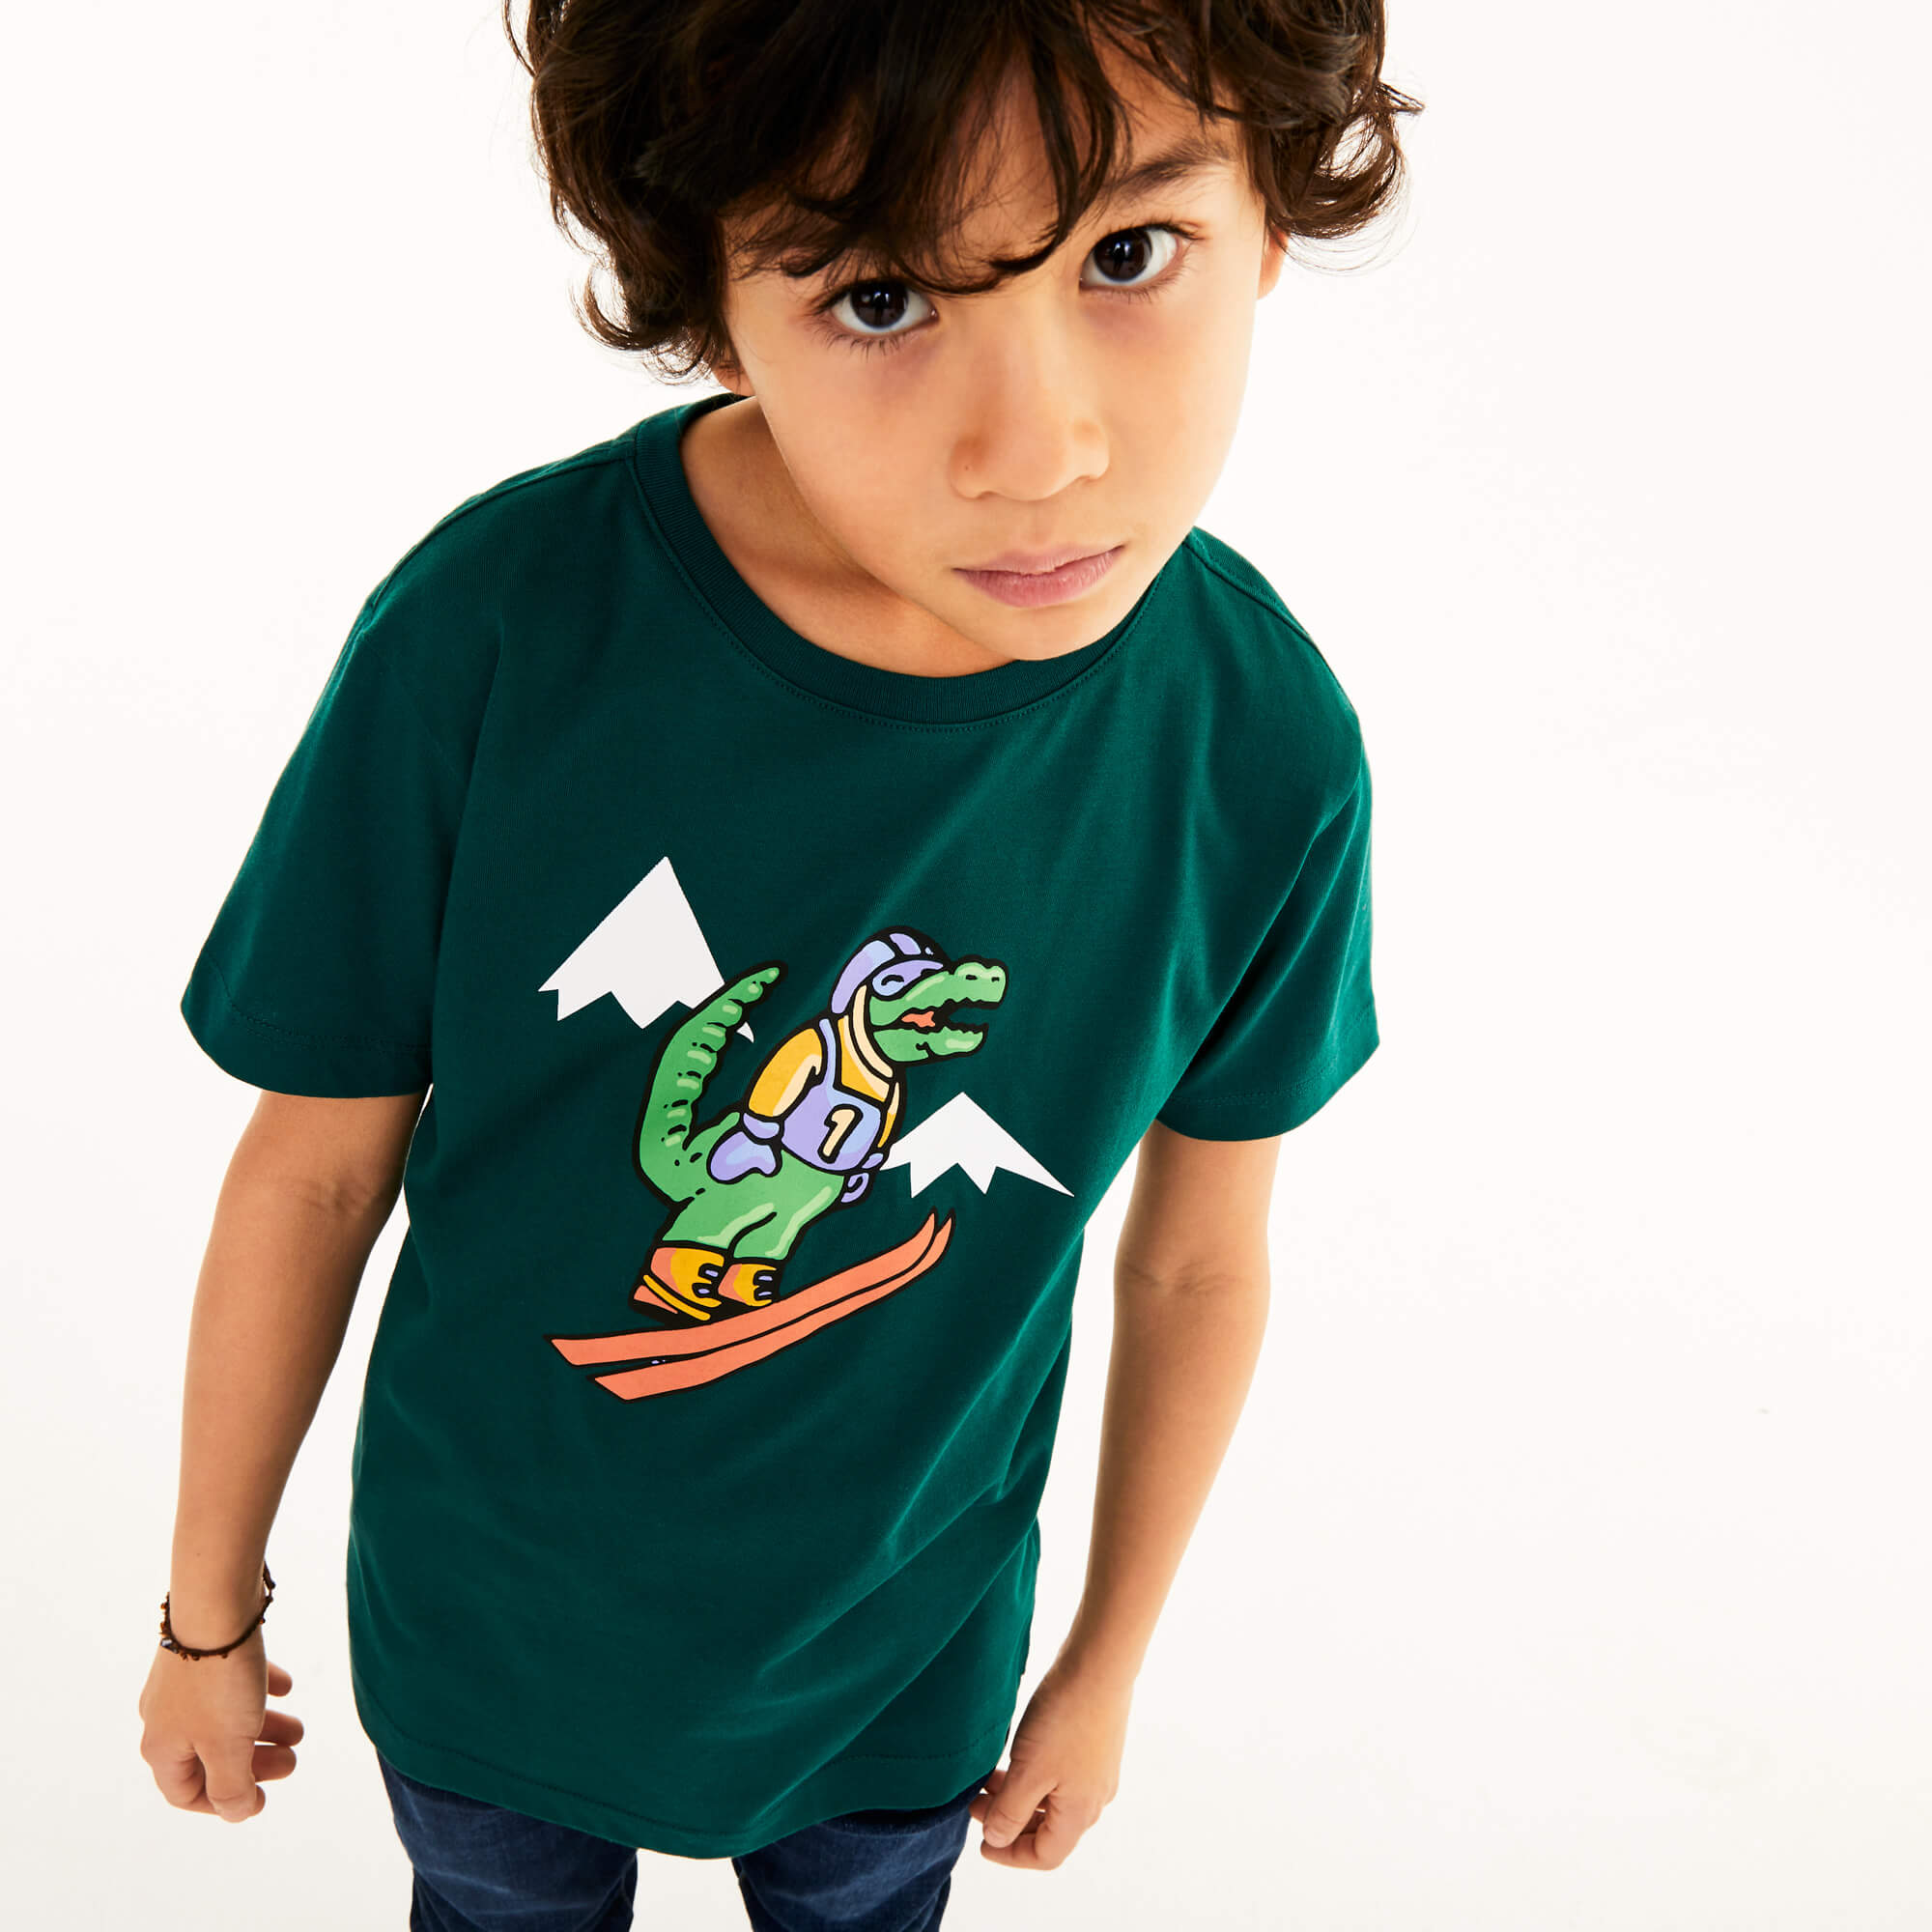 Boys' Skiing Crocodile Print Cotton T-Shirt Gift Set